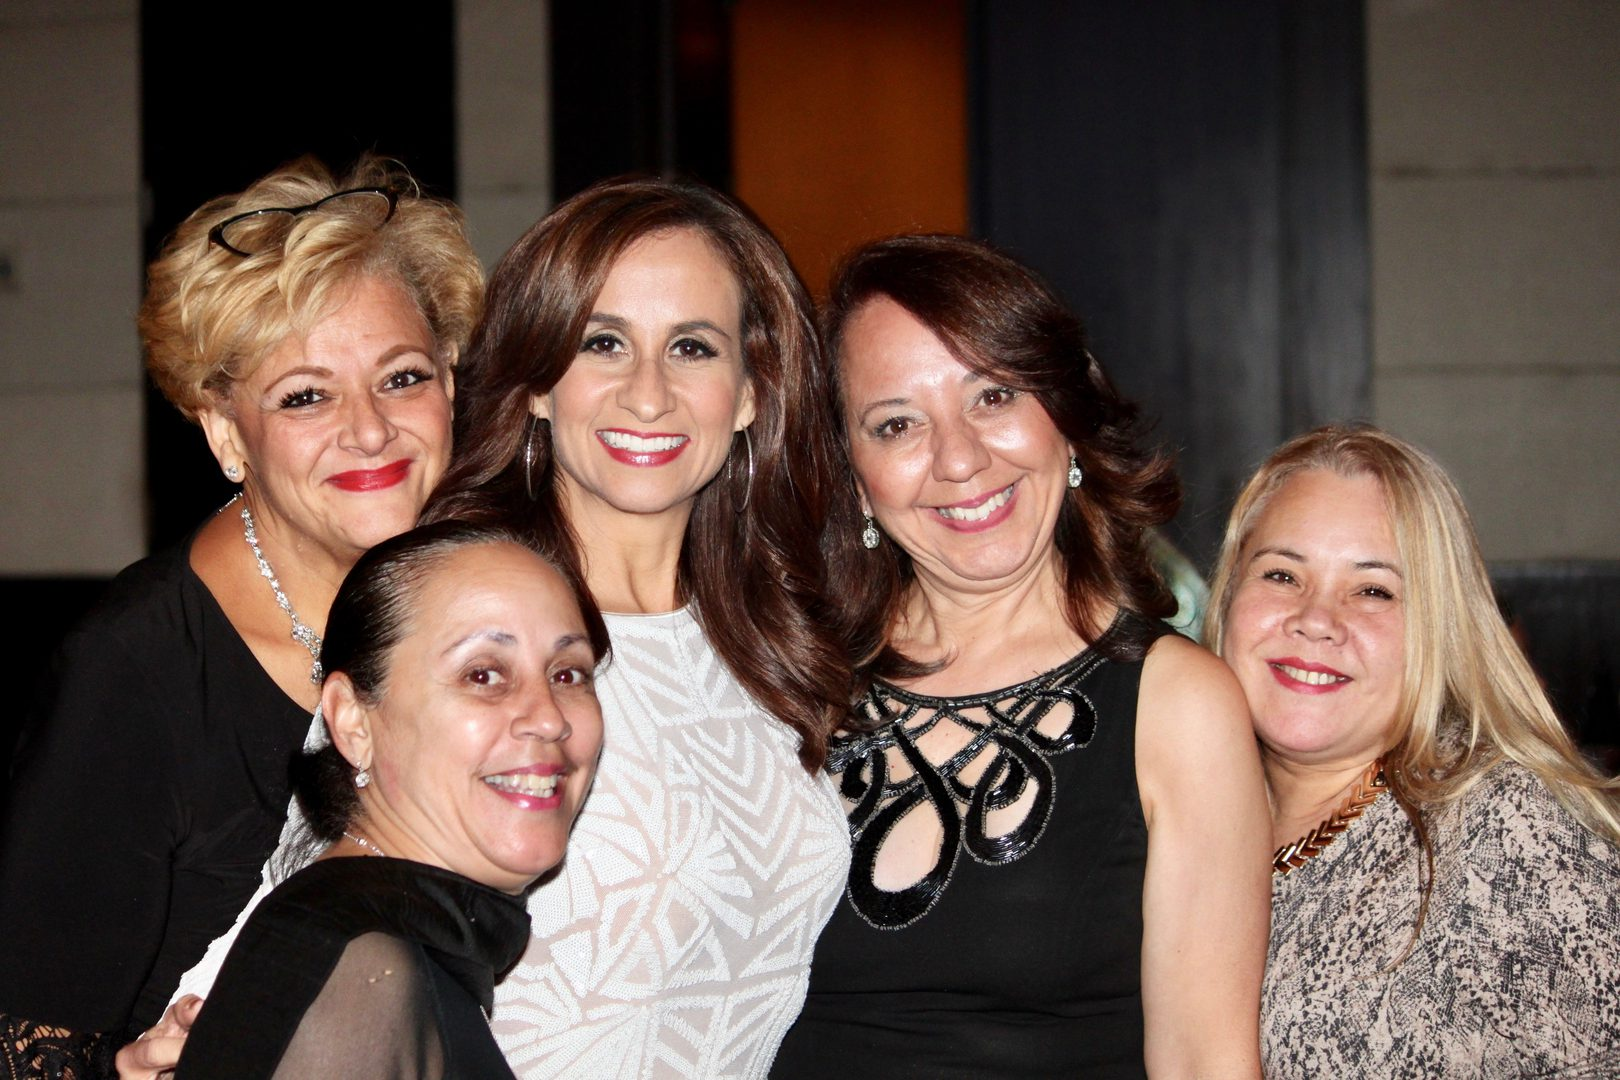 A group of women in an event